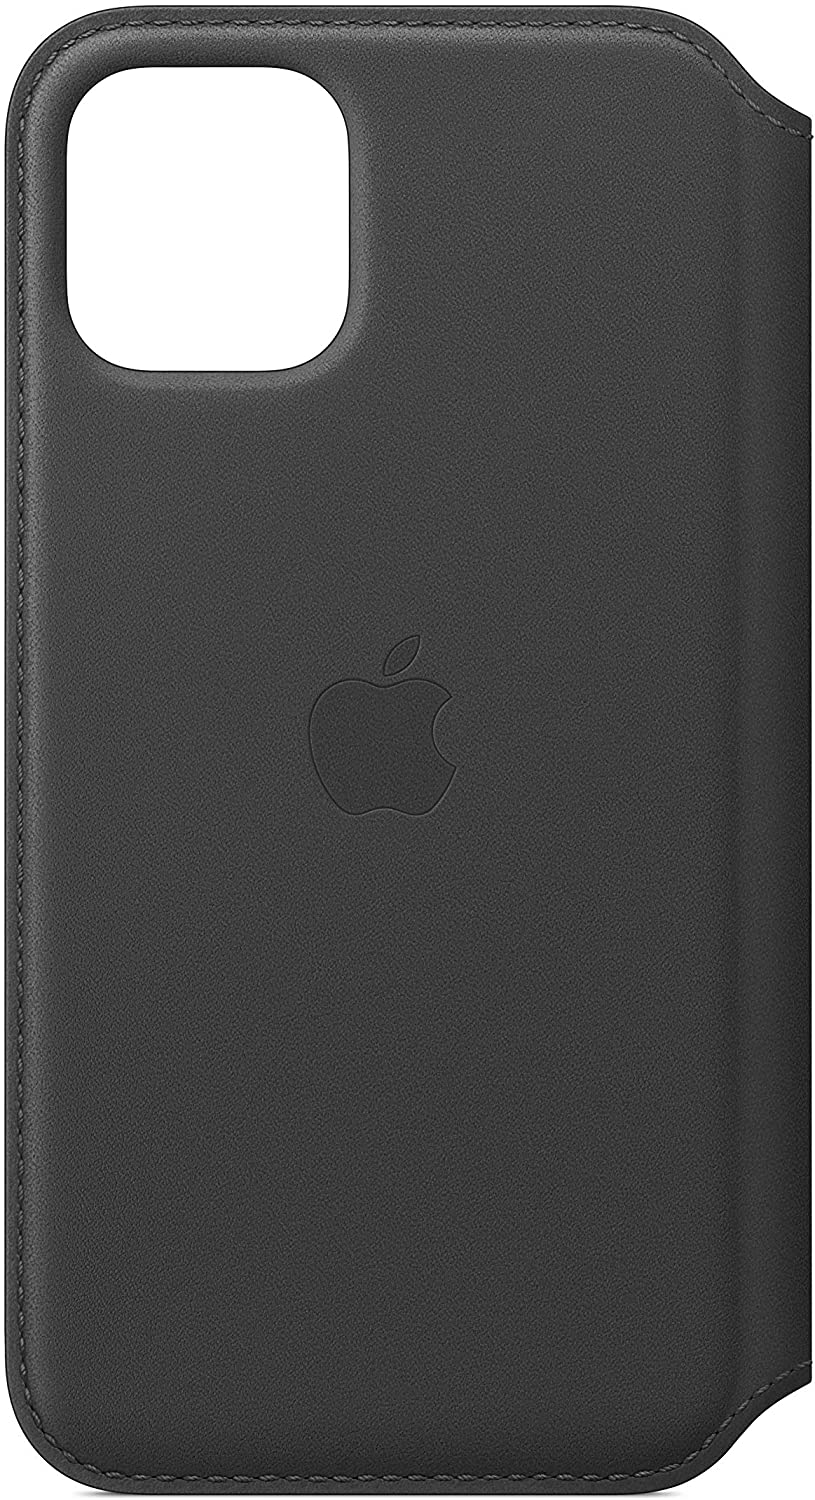 Apple Leather Folio iPhone 11 Pro